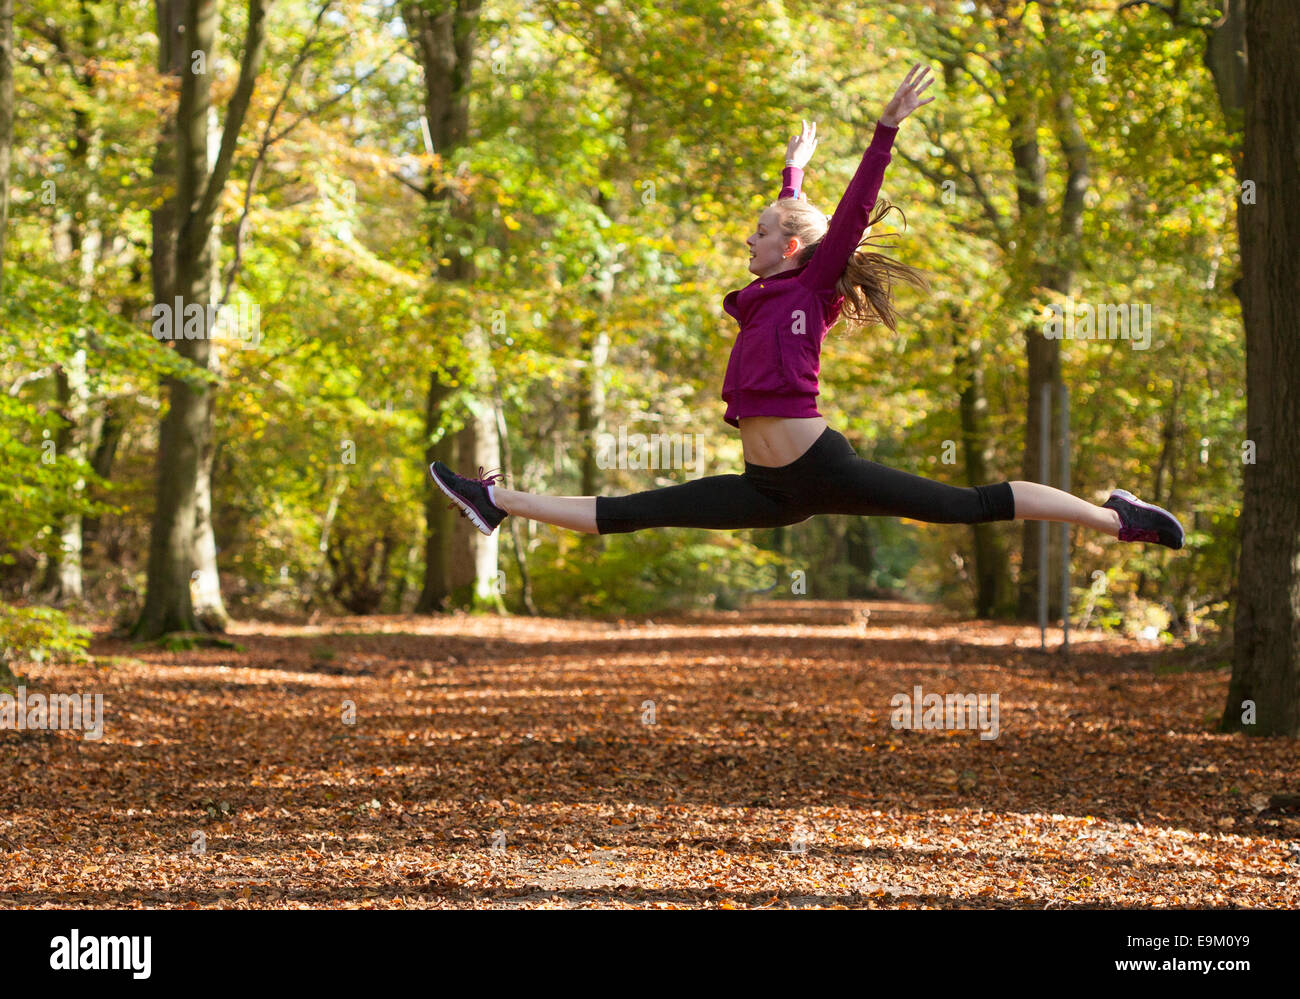 young woman doing split leap jump in autumn woods - Stock Image